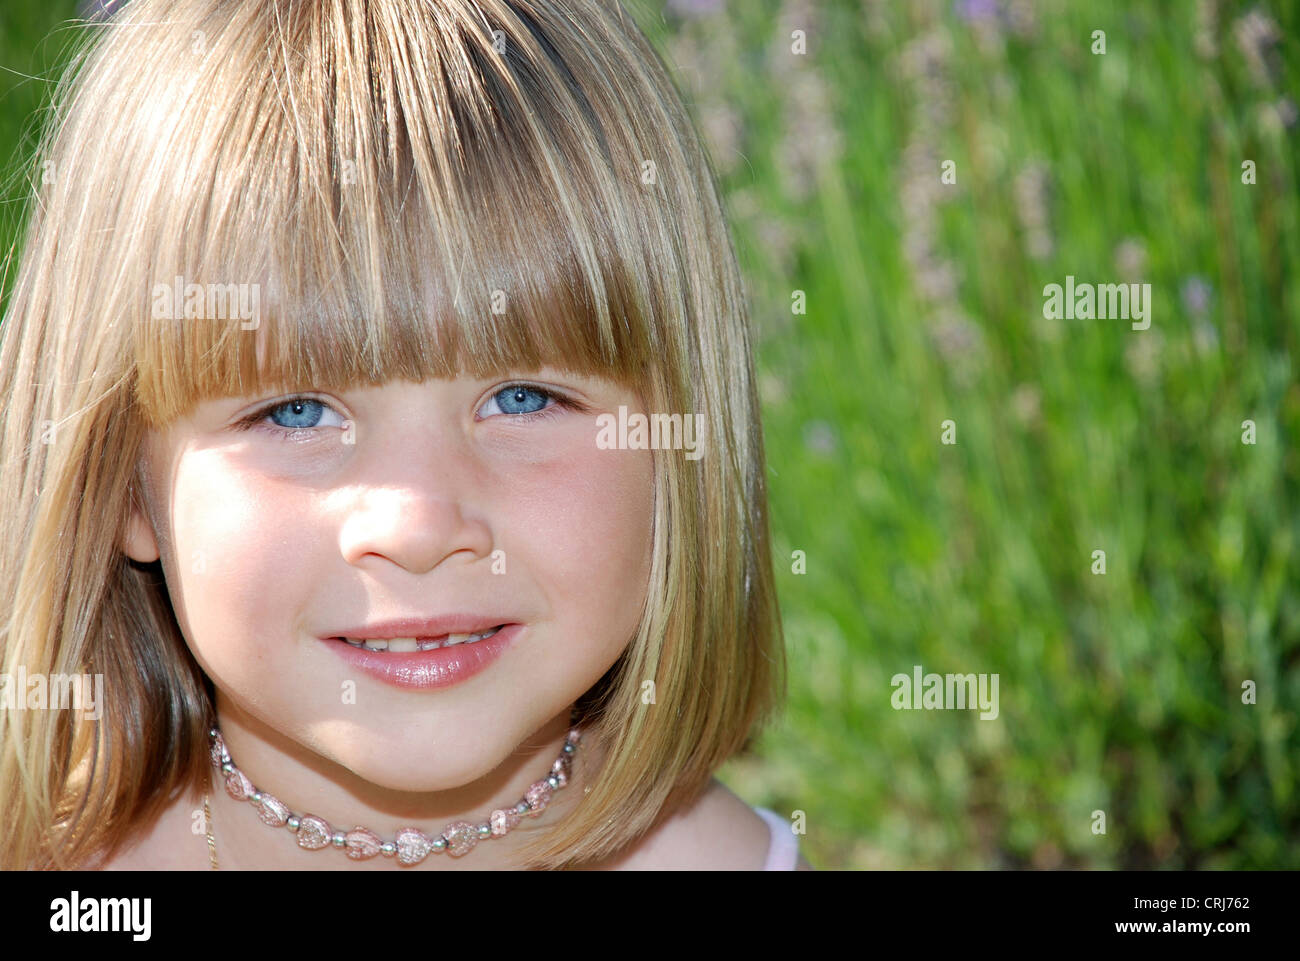 Little Girl With With Straight Blond Hair In Pageboy Style